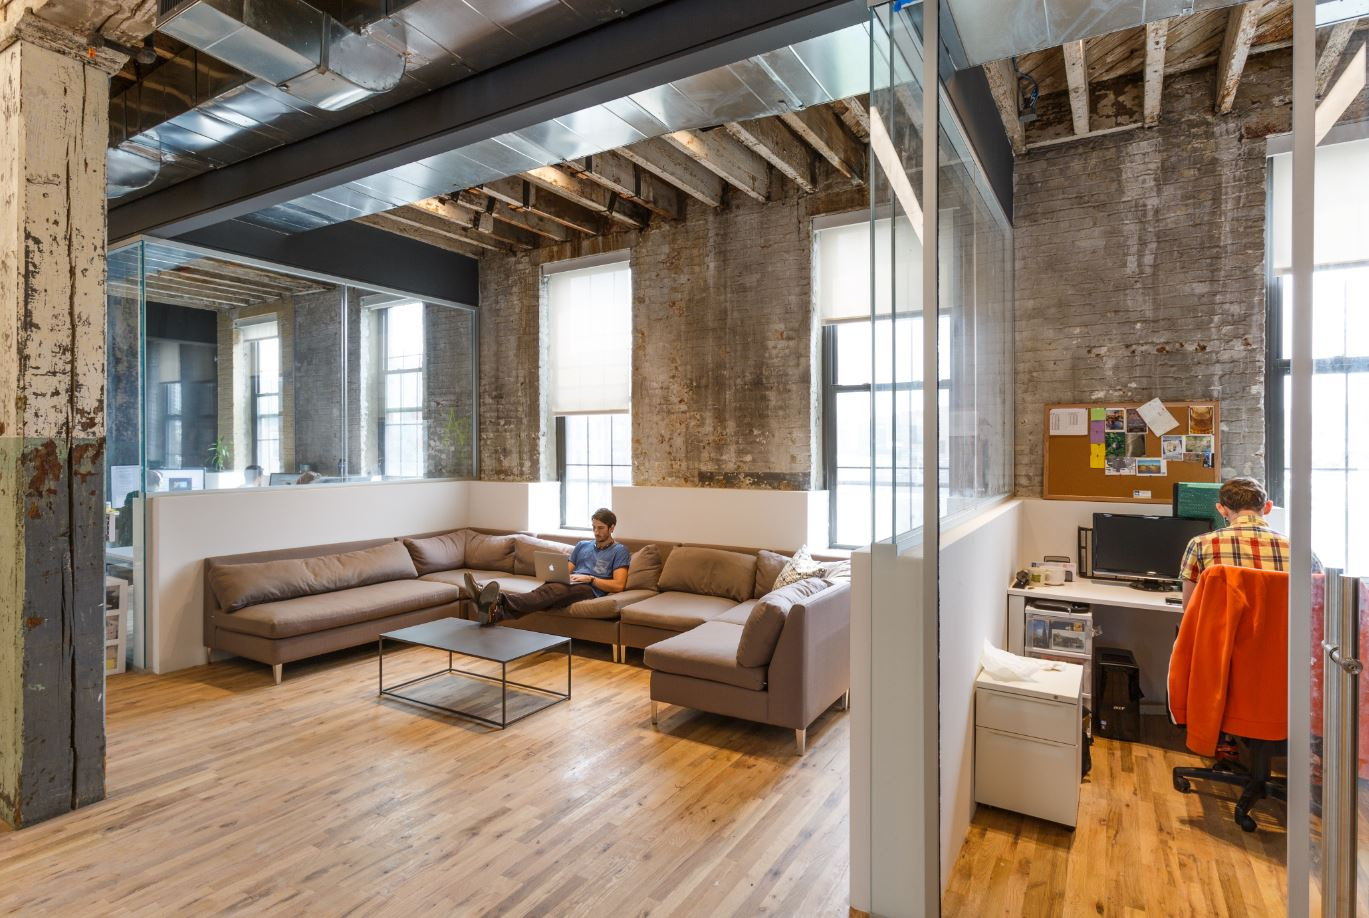 A Quick Look Inside Cowork Rs Brooklyn Coworking Space